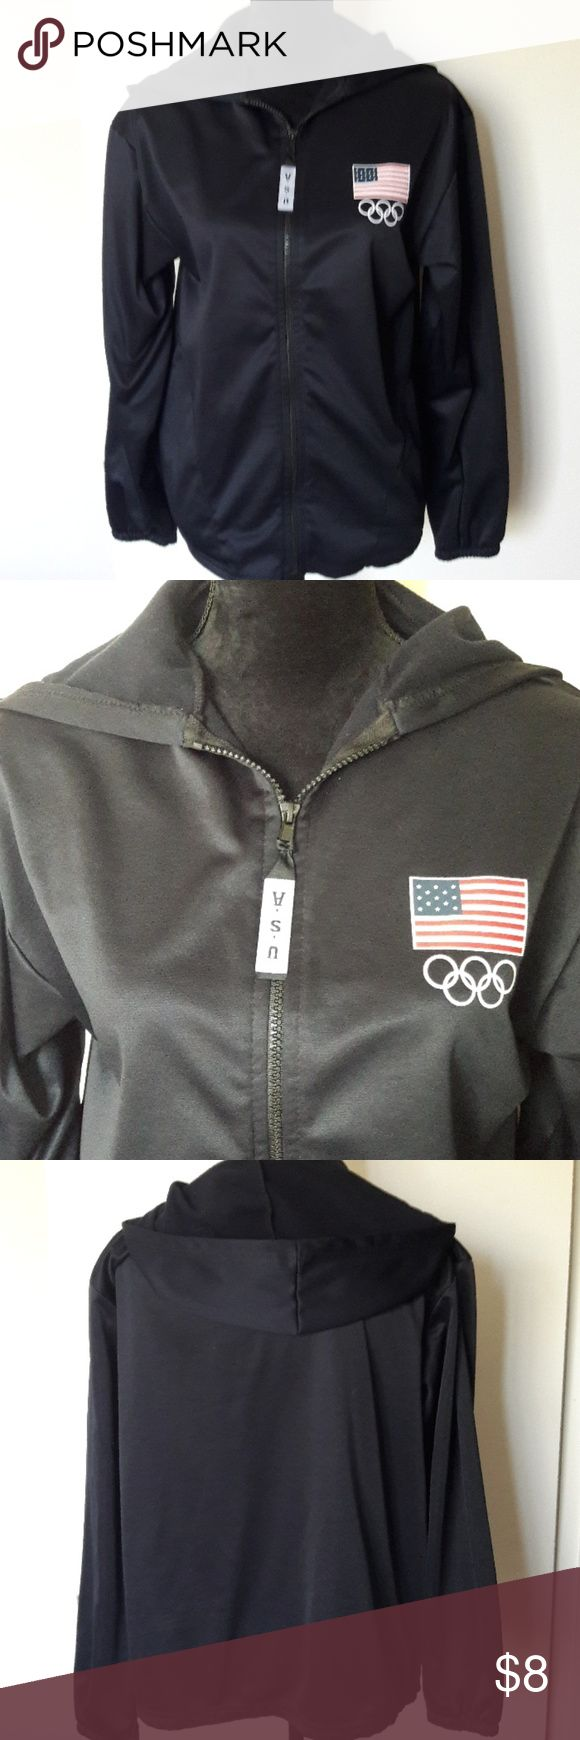 Olympic committee navy blue jacket. This jacket is in perfect condition, and made in the USA! Olympic  Committee Jackets & Coats